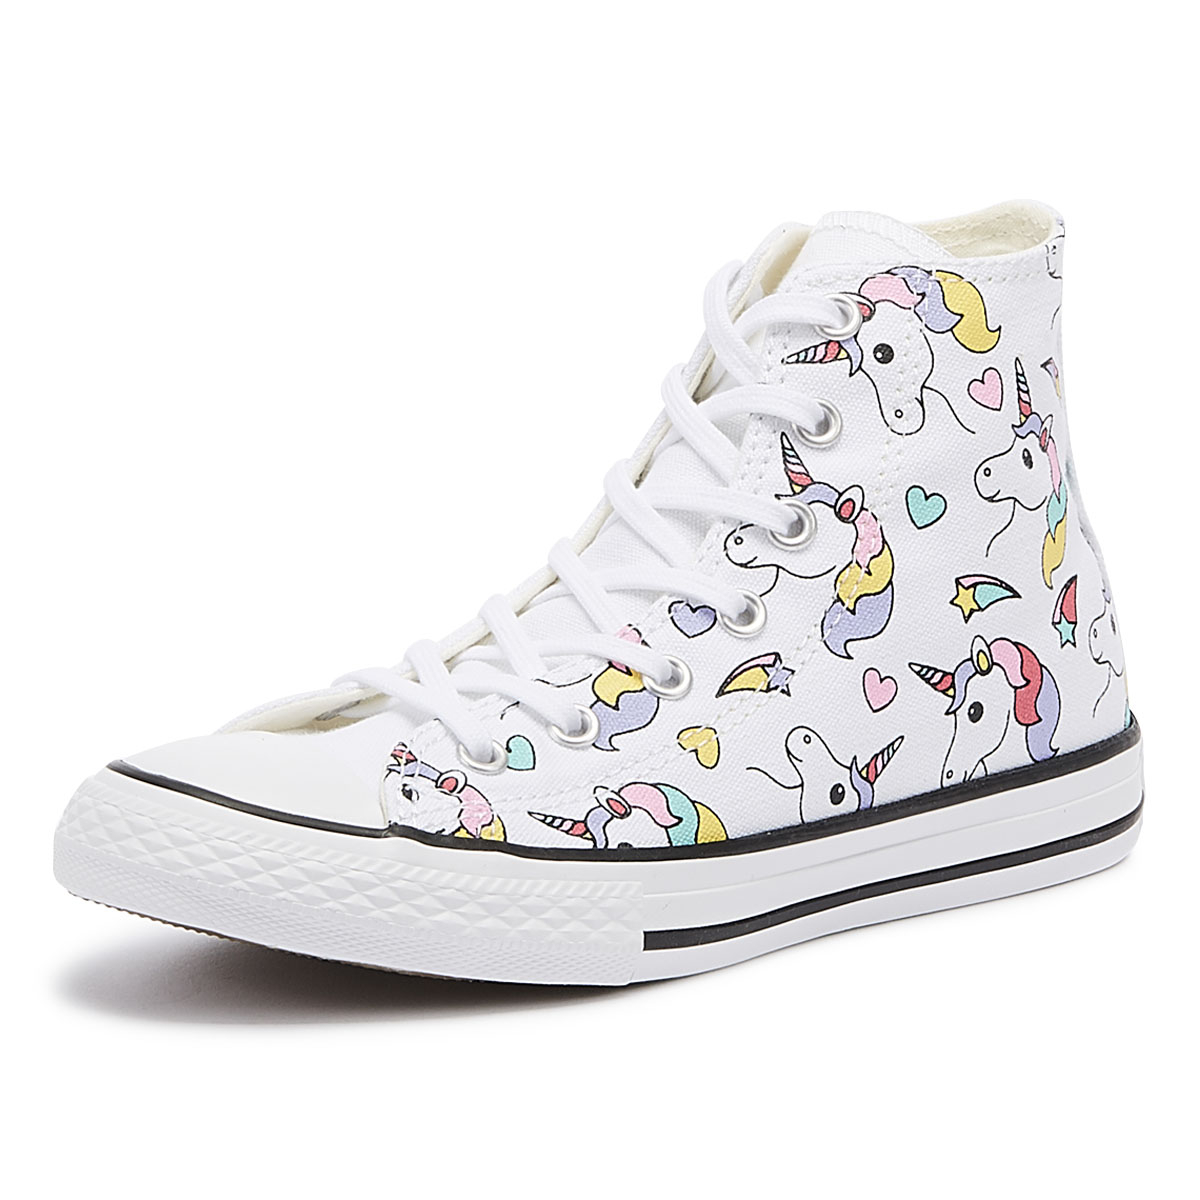 04bd3ff47222 Details about Converse Chuck Taylor All Star Junior Unicorn   Rainbow Hi  Trainers Kids Shoes